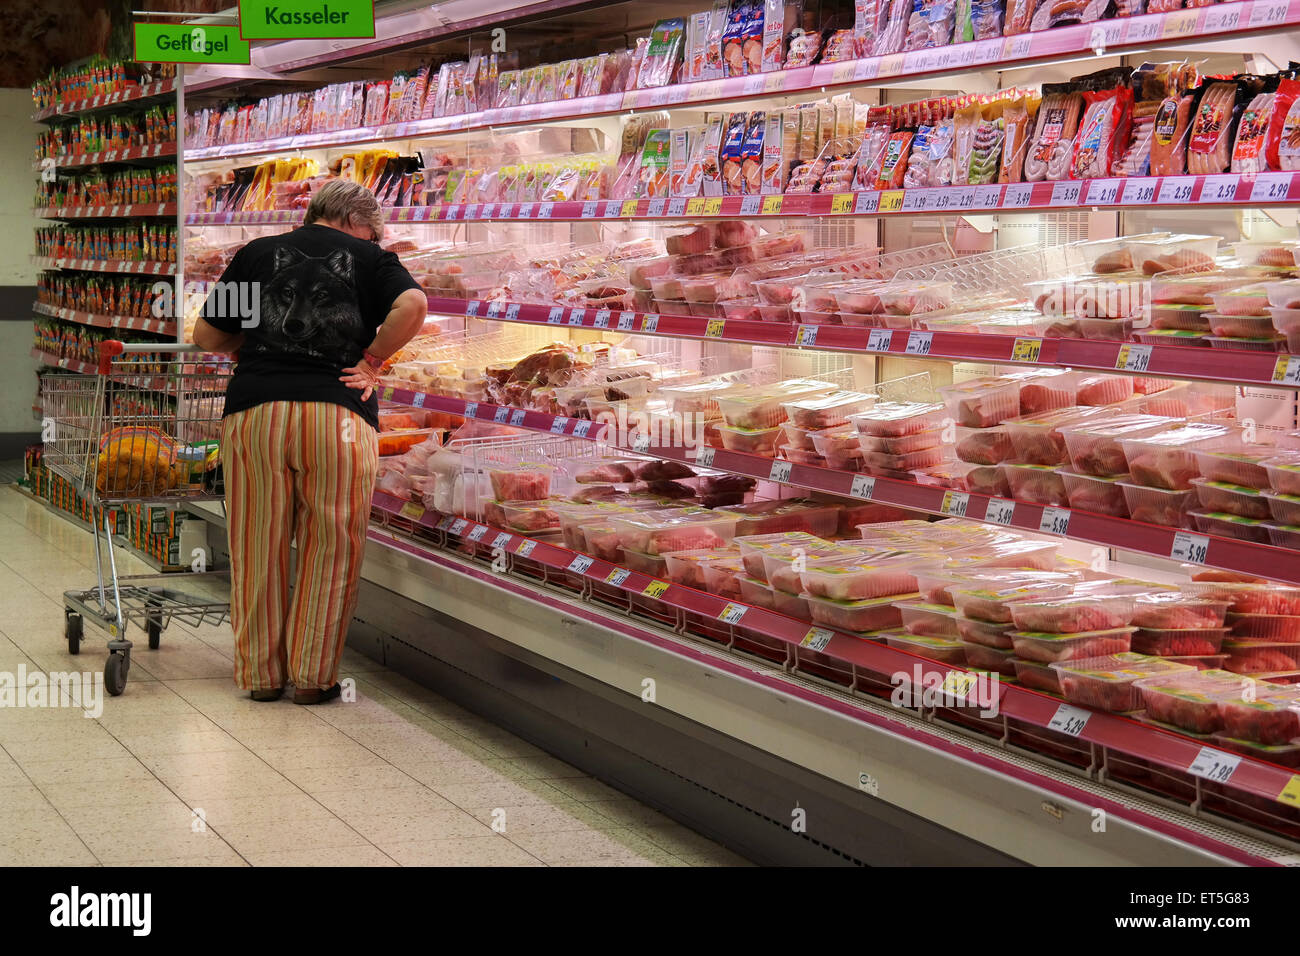 GERMANY - MAY 2015: Customer selecting packaged meat in refrigerated section of a Kaufland hypermarket - Stock Image